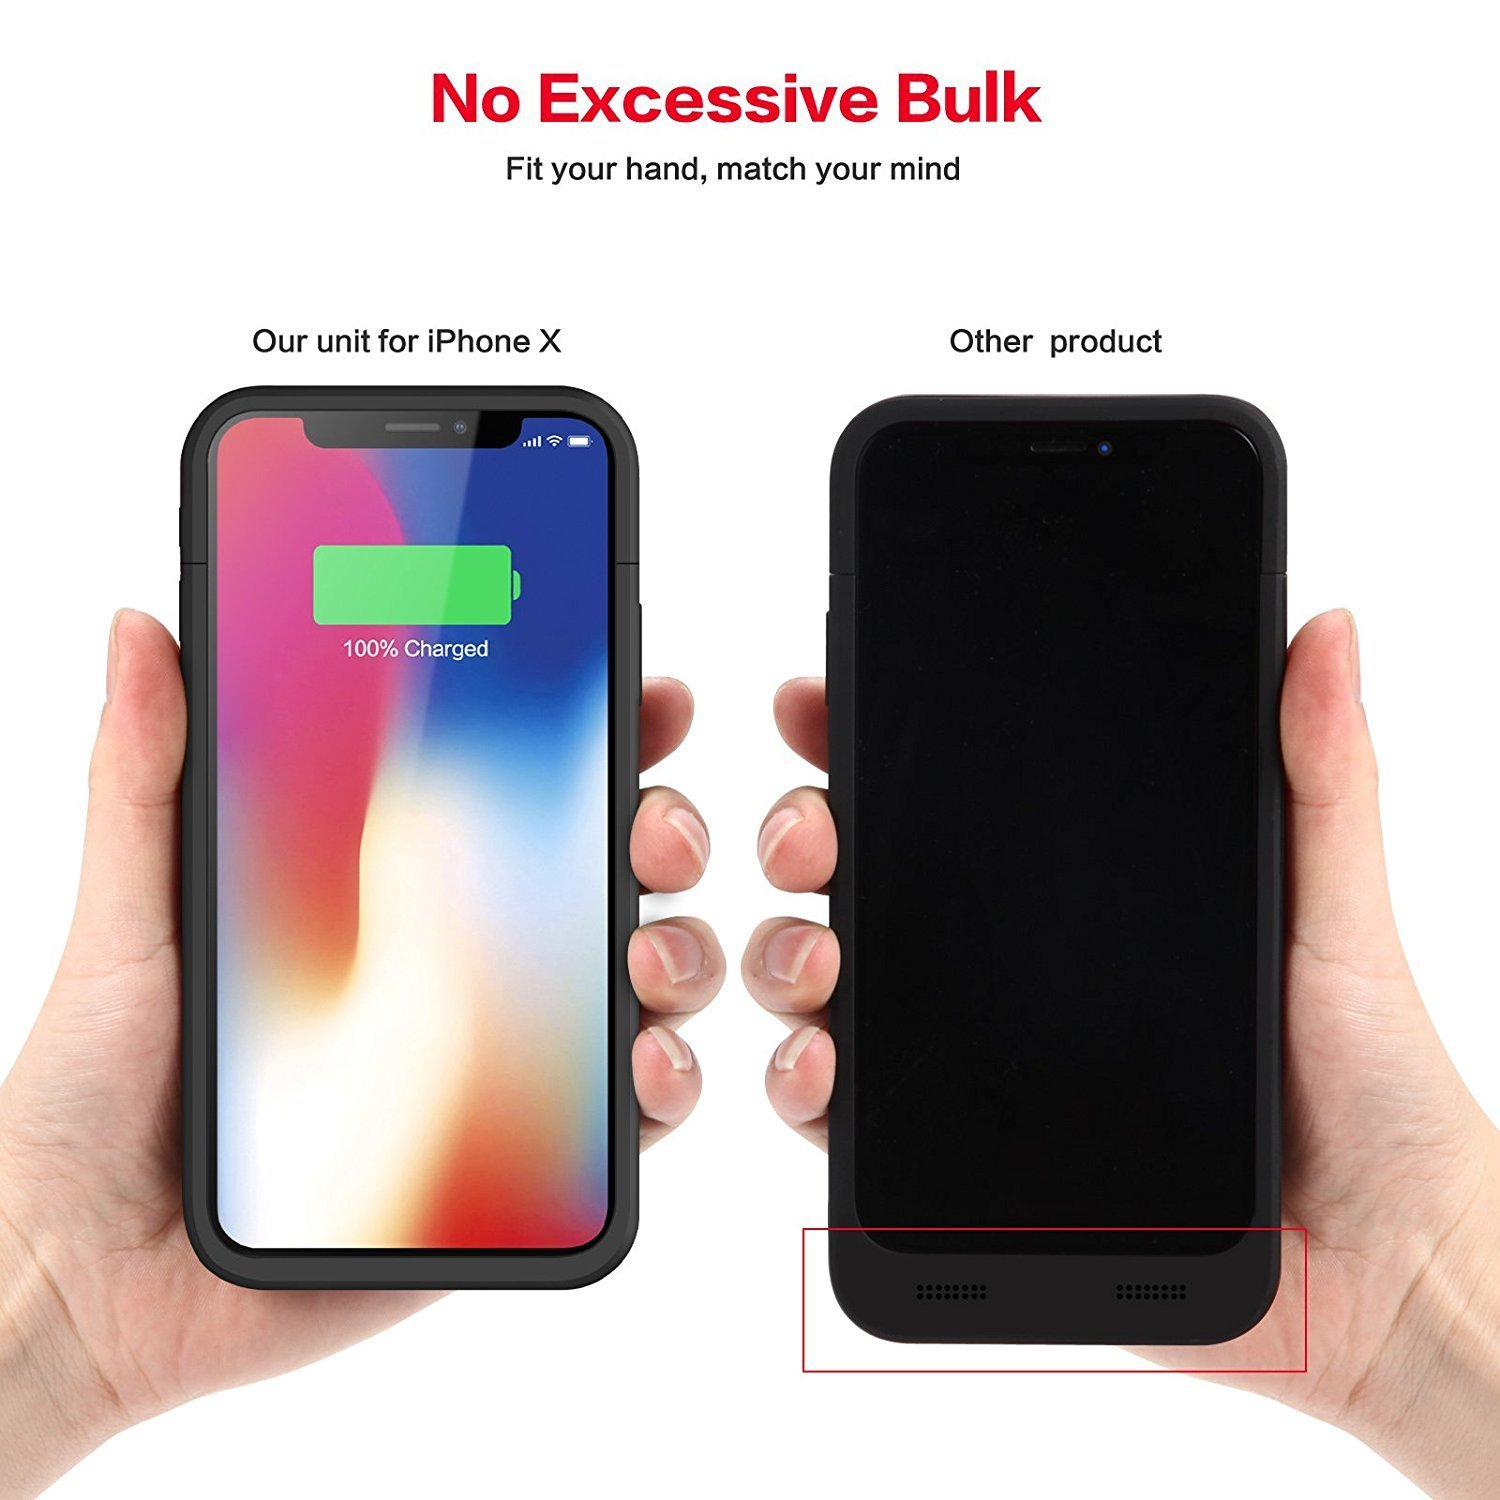 Battery Case For Iphone X Izam Iphone X Xs Battery Case 5200mah Rechargeable Portable Izam Power Charging Case For Iphone X Xs Case Ultra Thin And Light Weight Black